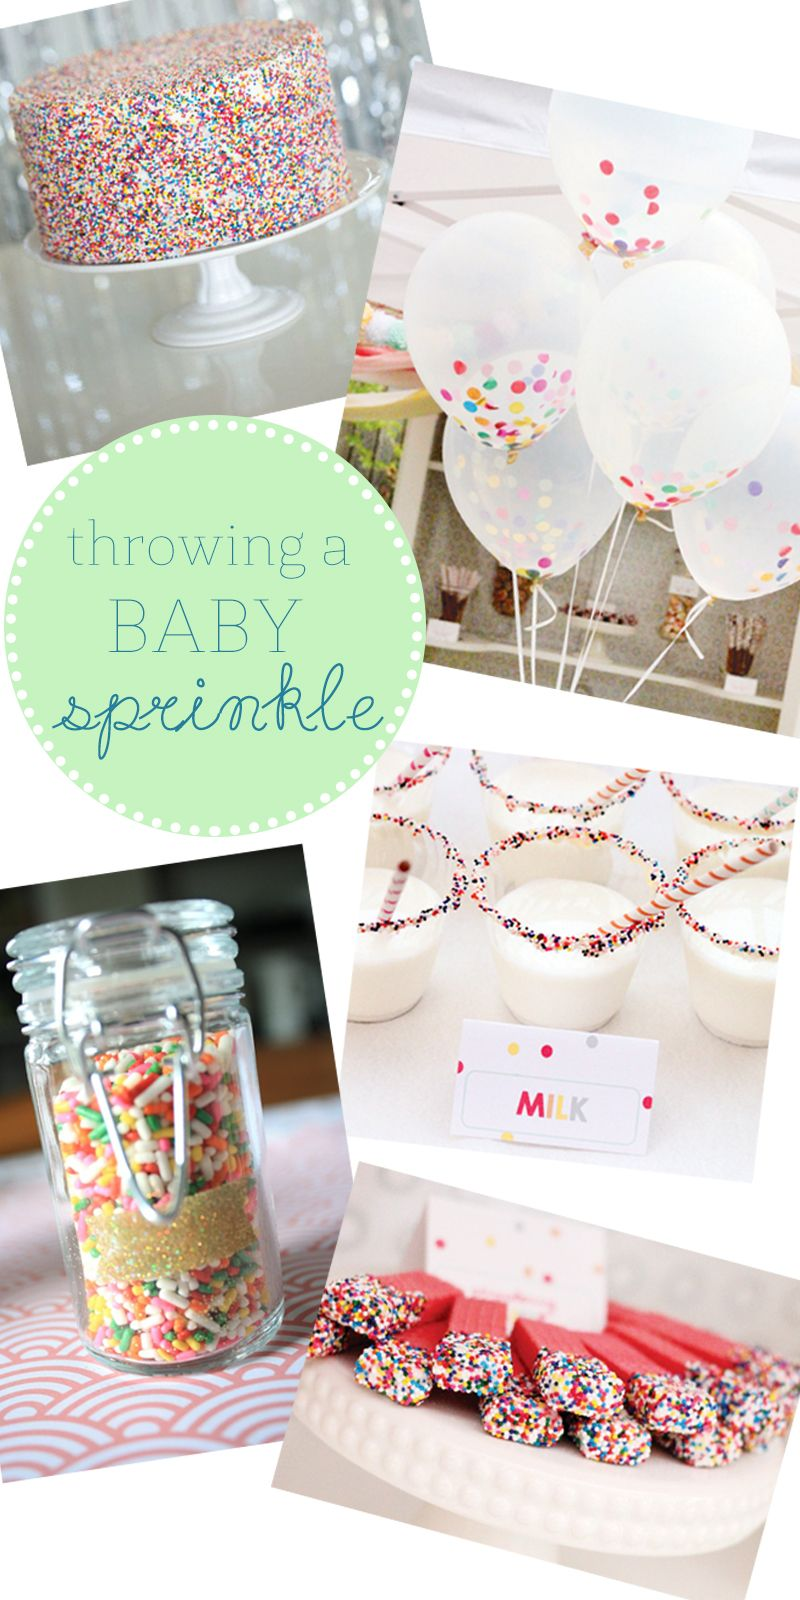 Fun Ideas for Your Baby Sprinkle Party in 2018 | Baby ...